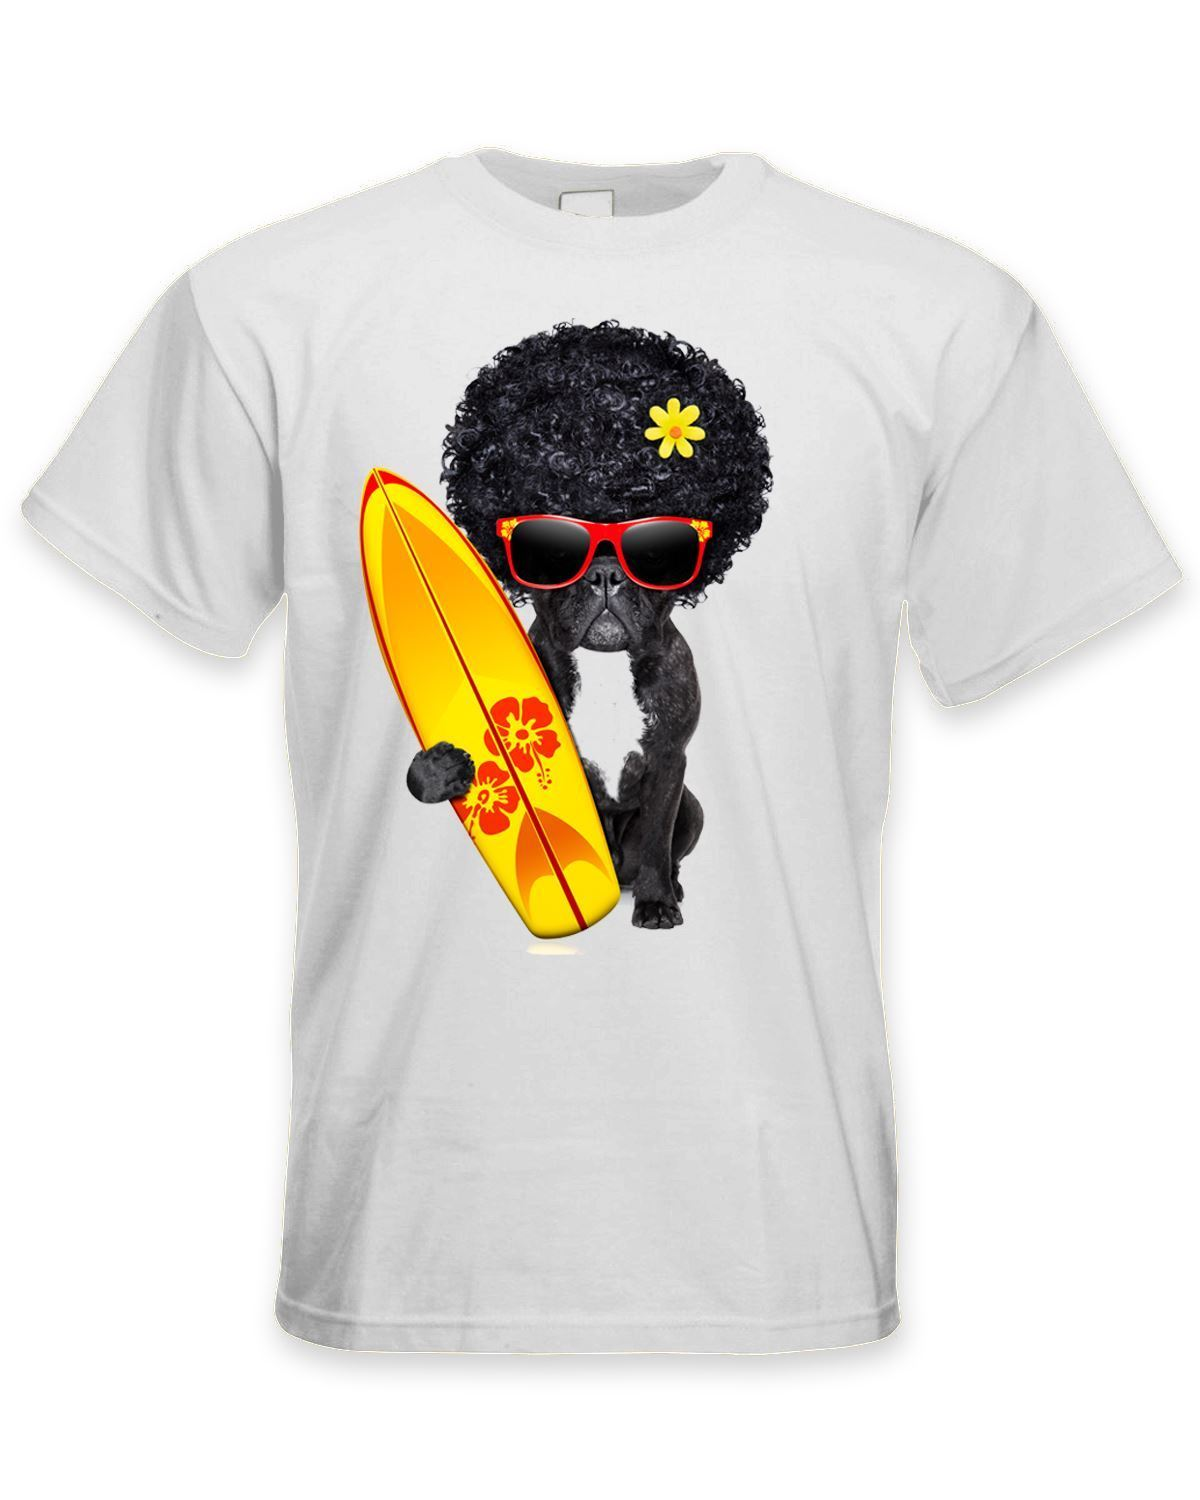 100% Quality French Bulldog Surfer With Afro Hair Men's T-shirt - Funny Pet Bull Dog Cartoon T Shirt Men Unisex New Fashion Tshirt Loose Pure And Mild Flavor